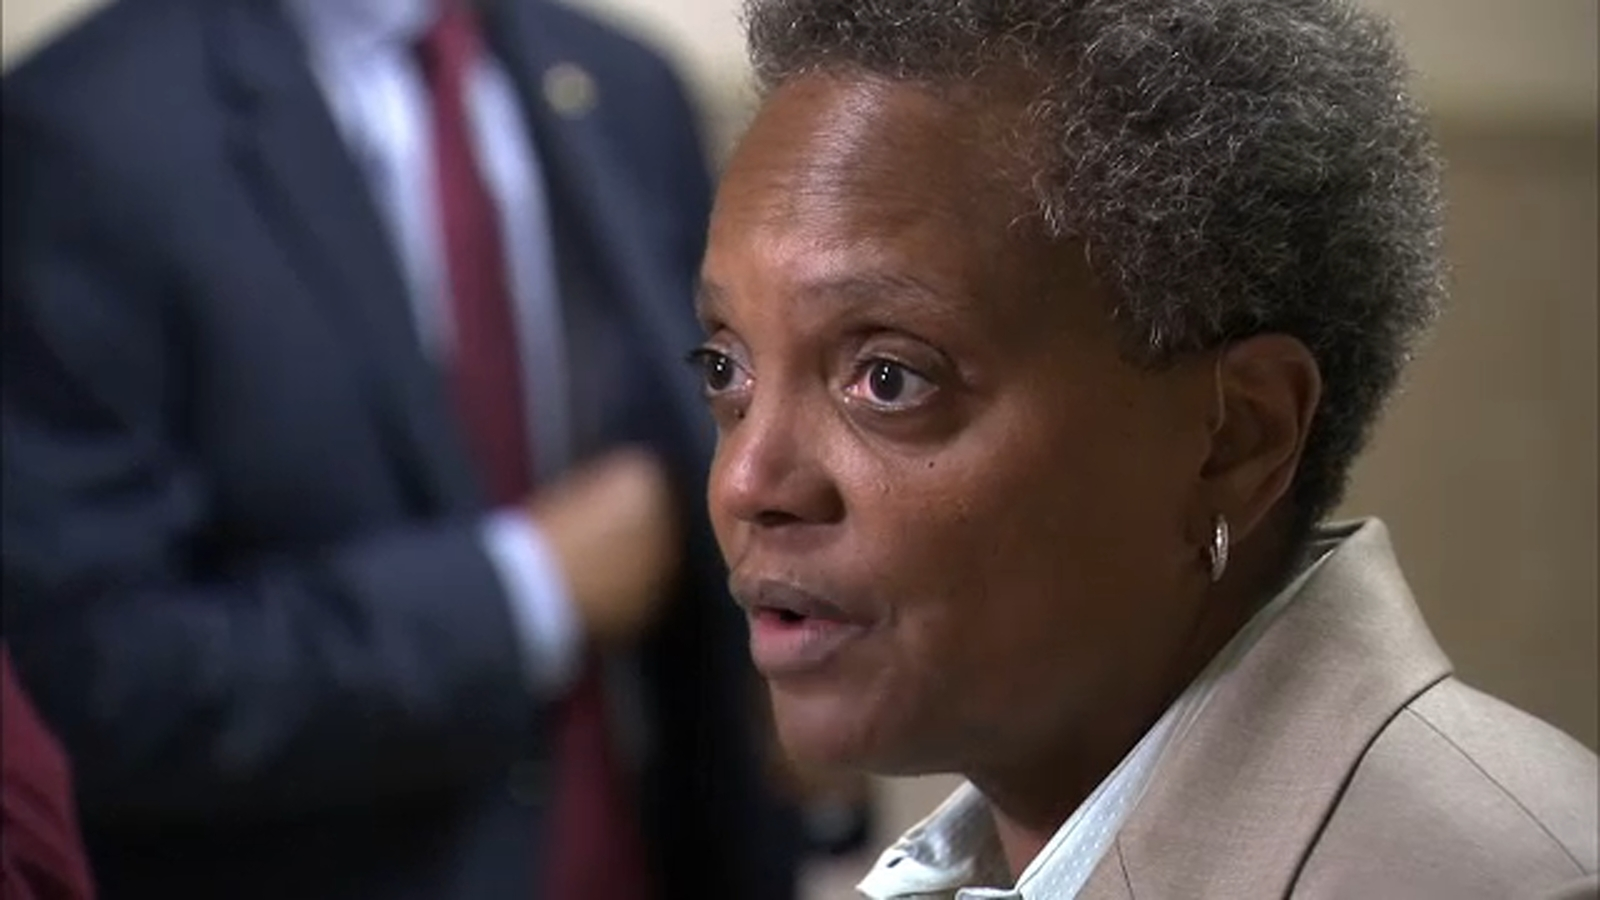 Mayor Lori Lightfoot says Chicago's property taxes will increase if Springfield doesn't act